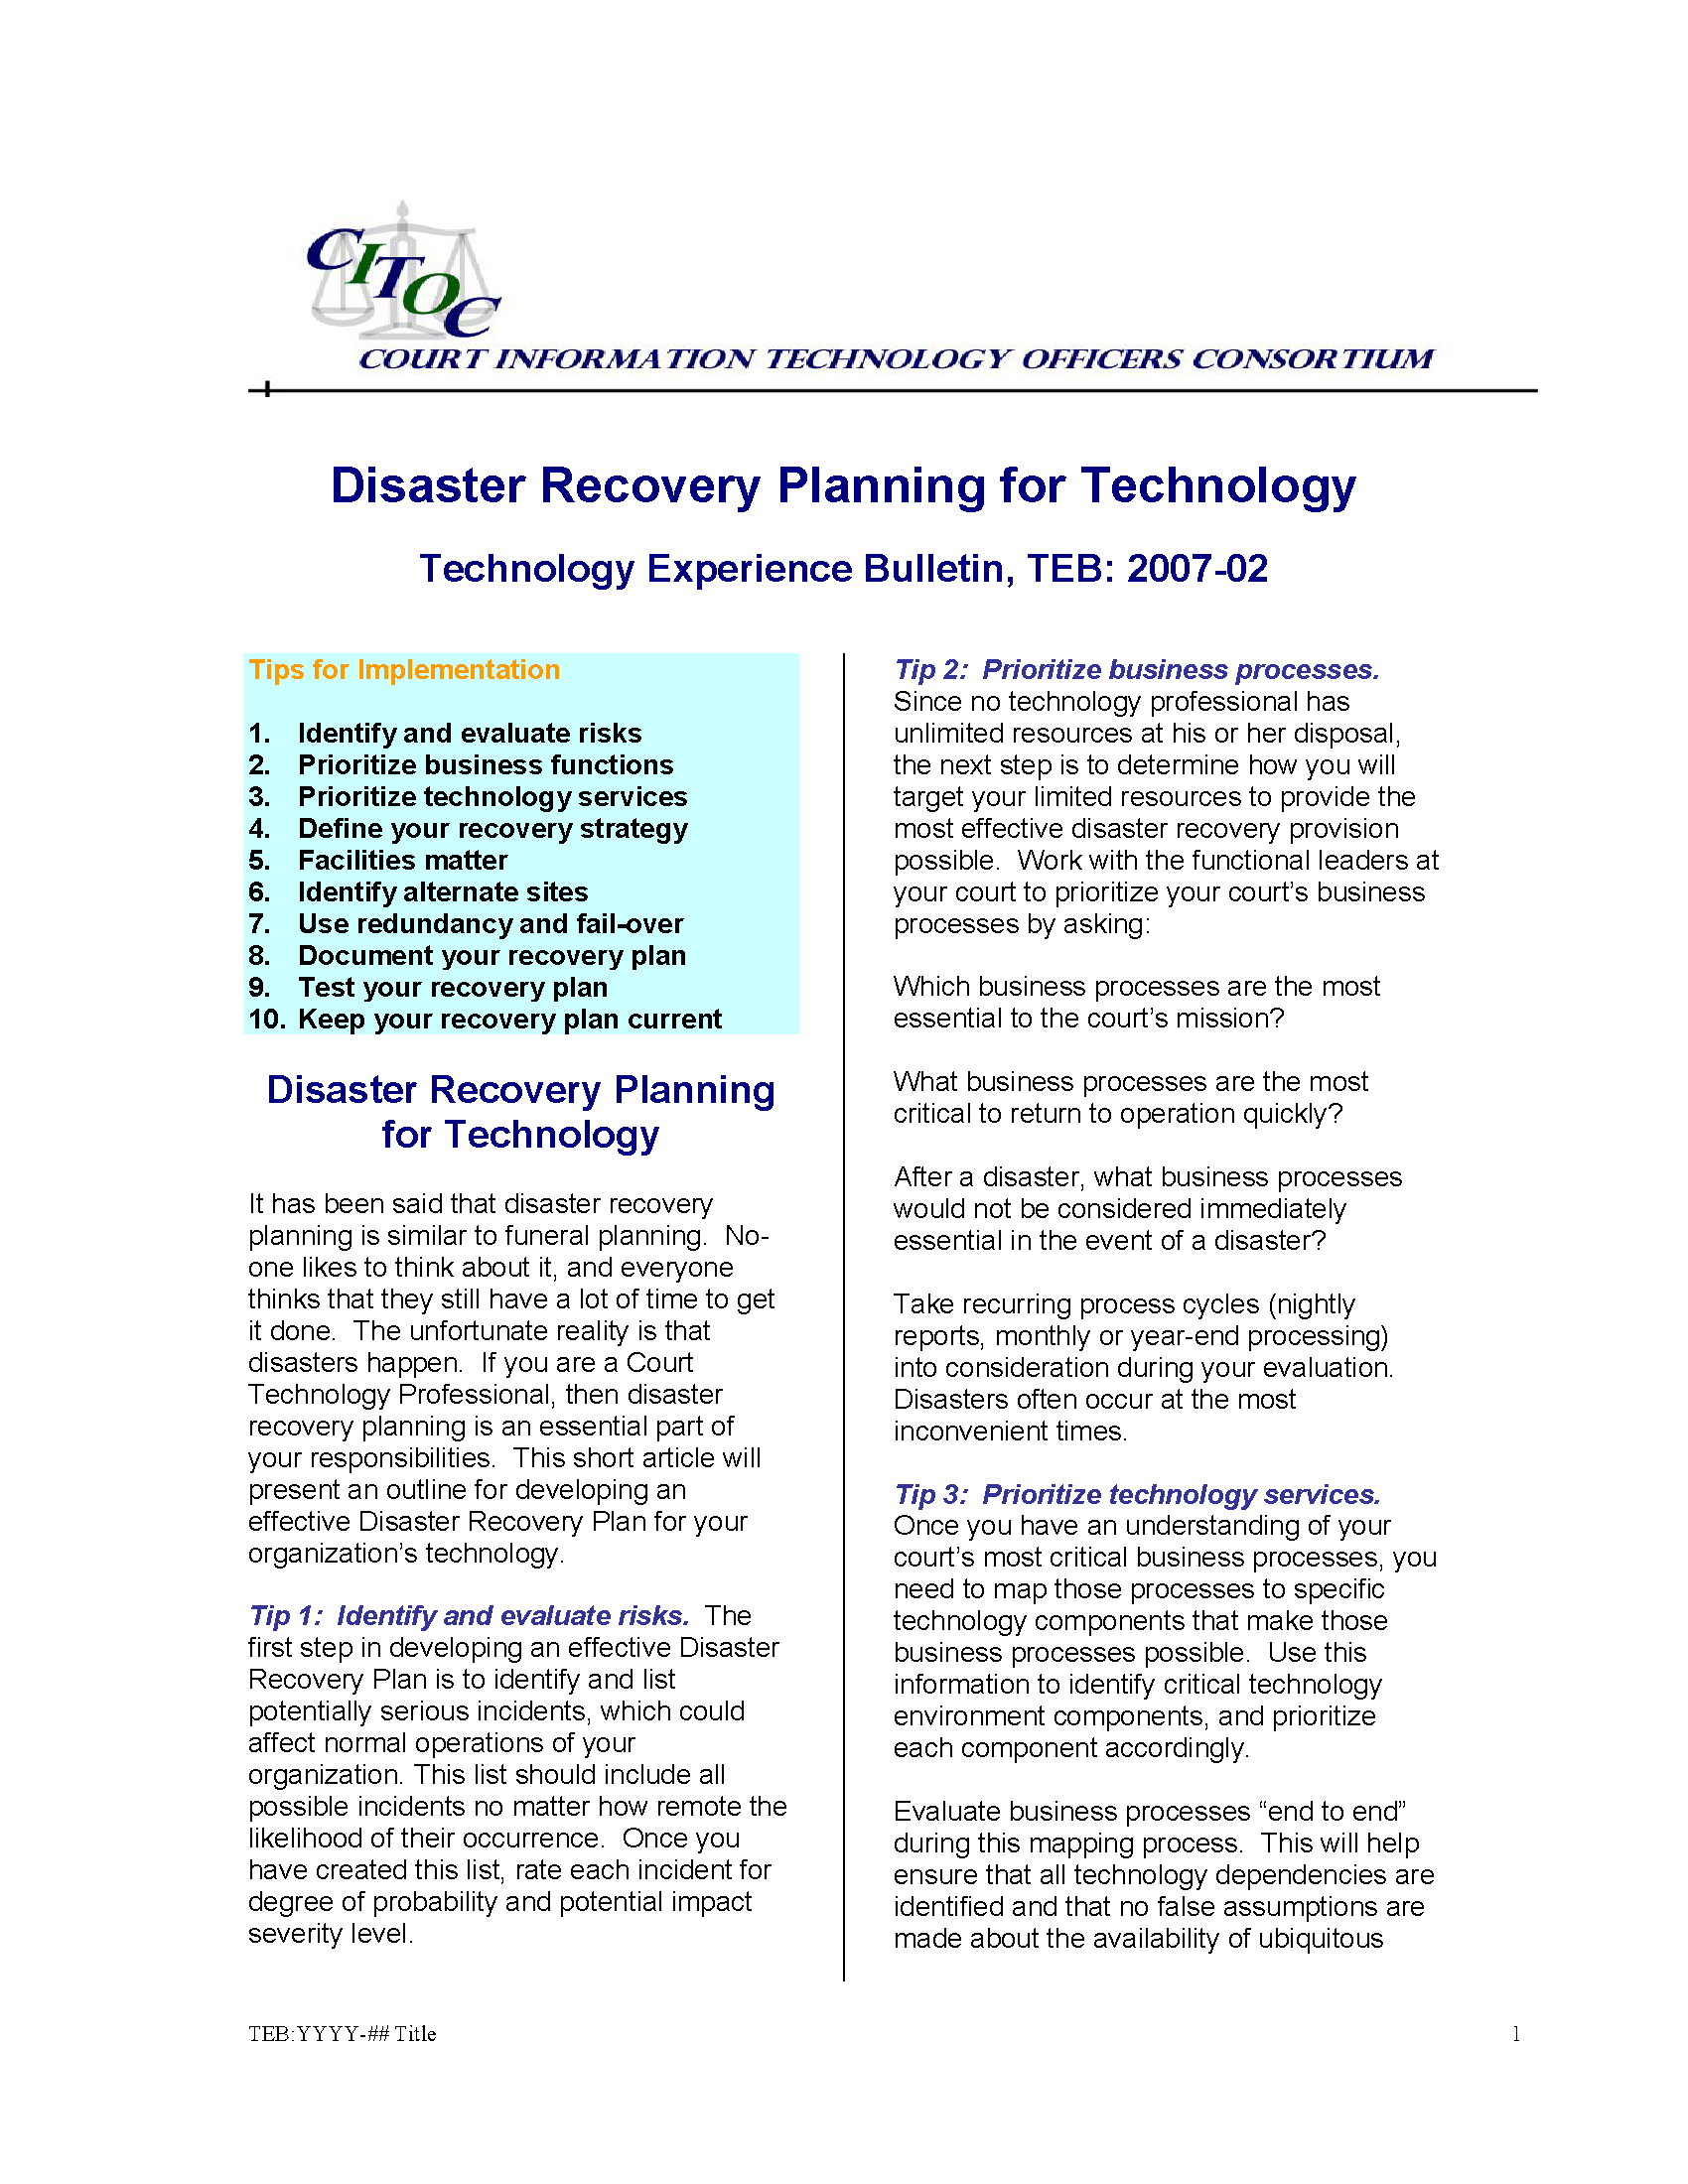 Disaster Recovery Planning for Technology - Courthouse